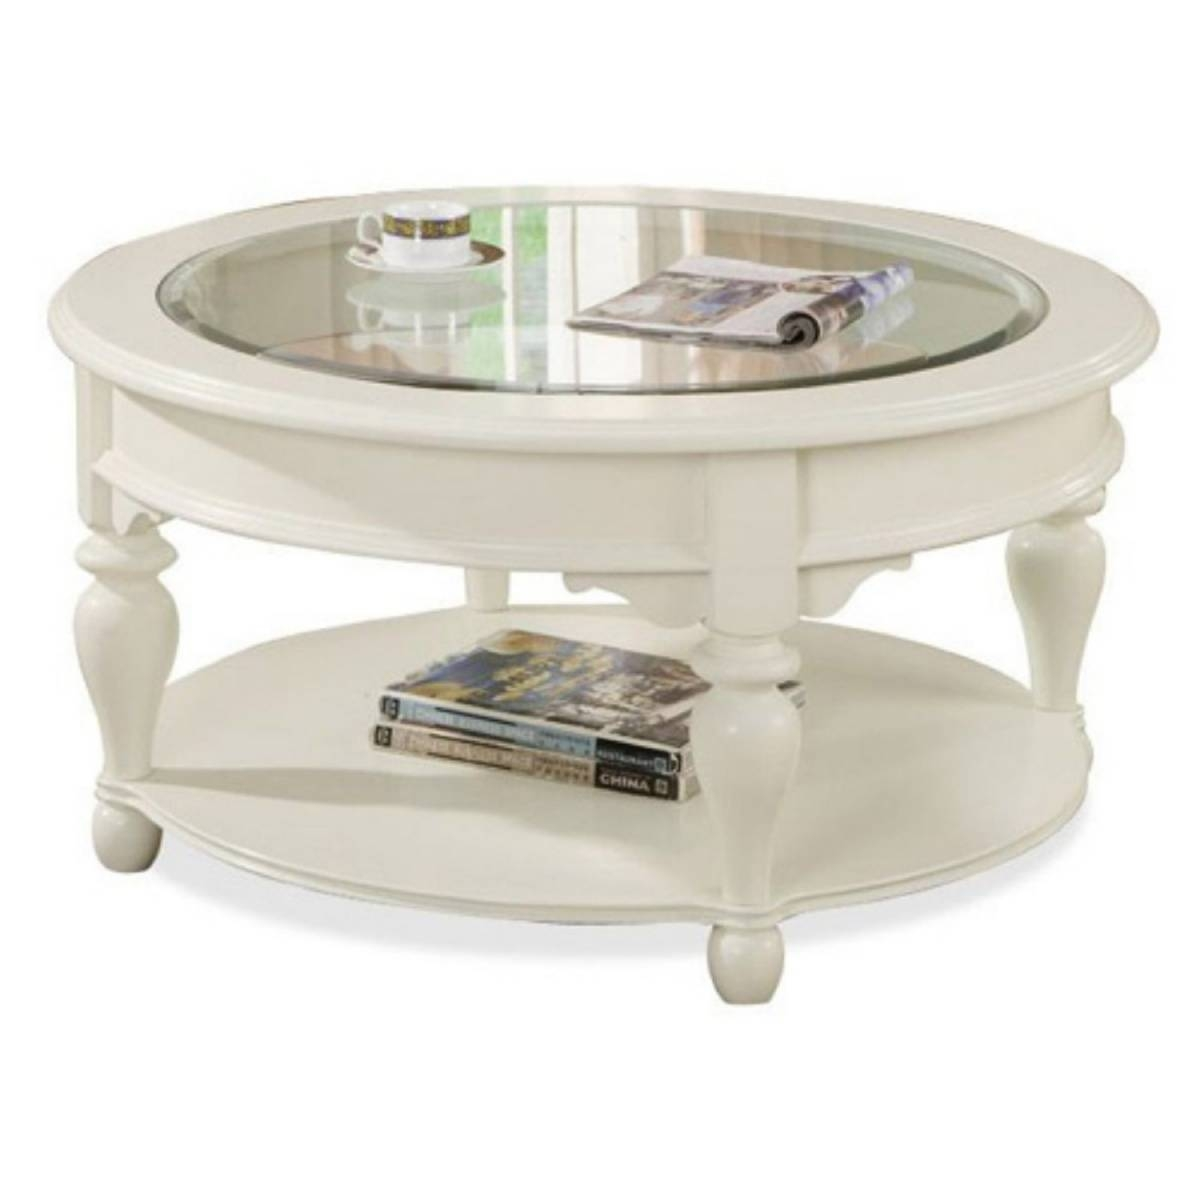 Round White Coffee Tables | Coffee Tables Decoration Regarding White Coffee Tables With Storage (View 19 of 30)